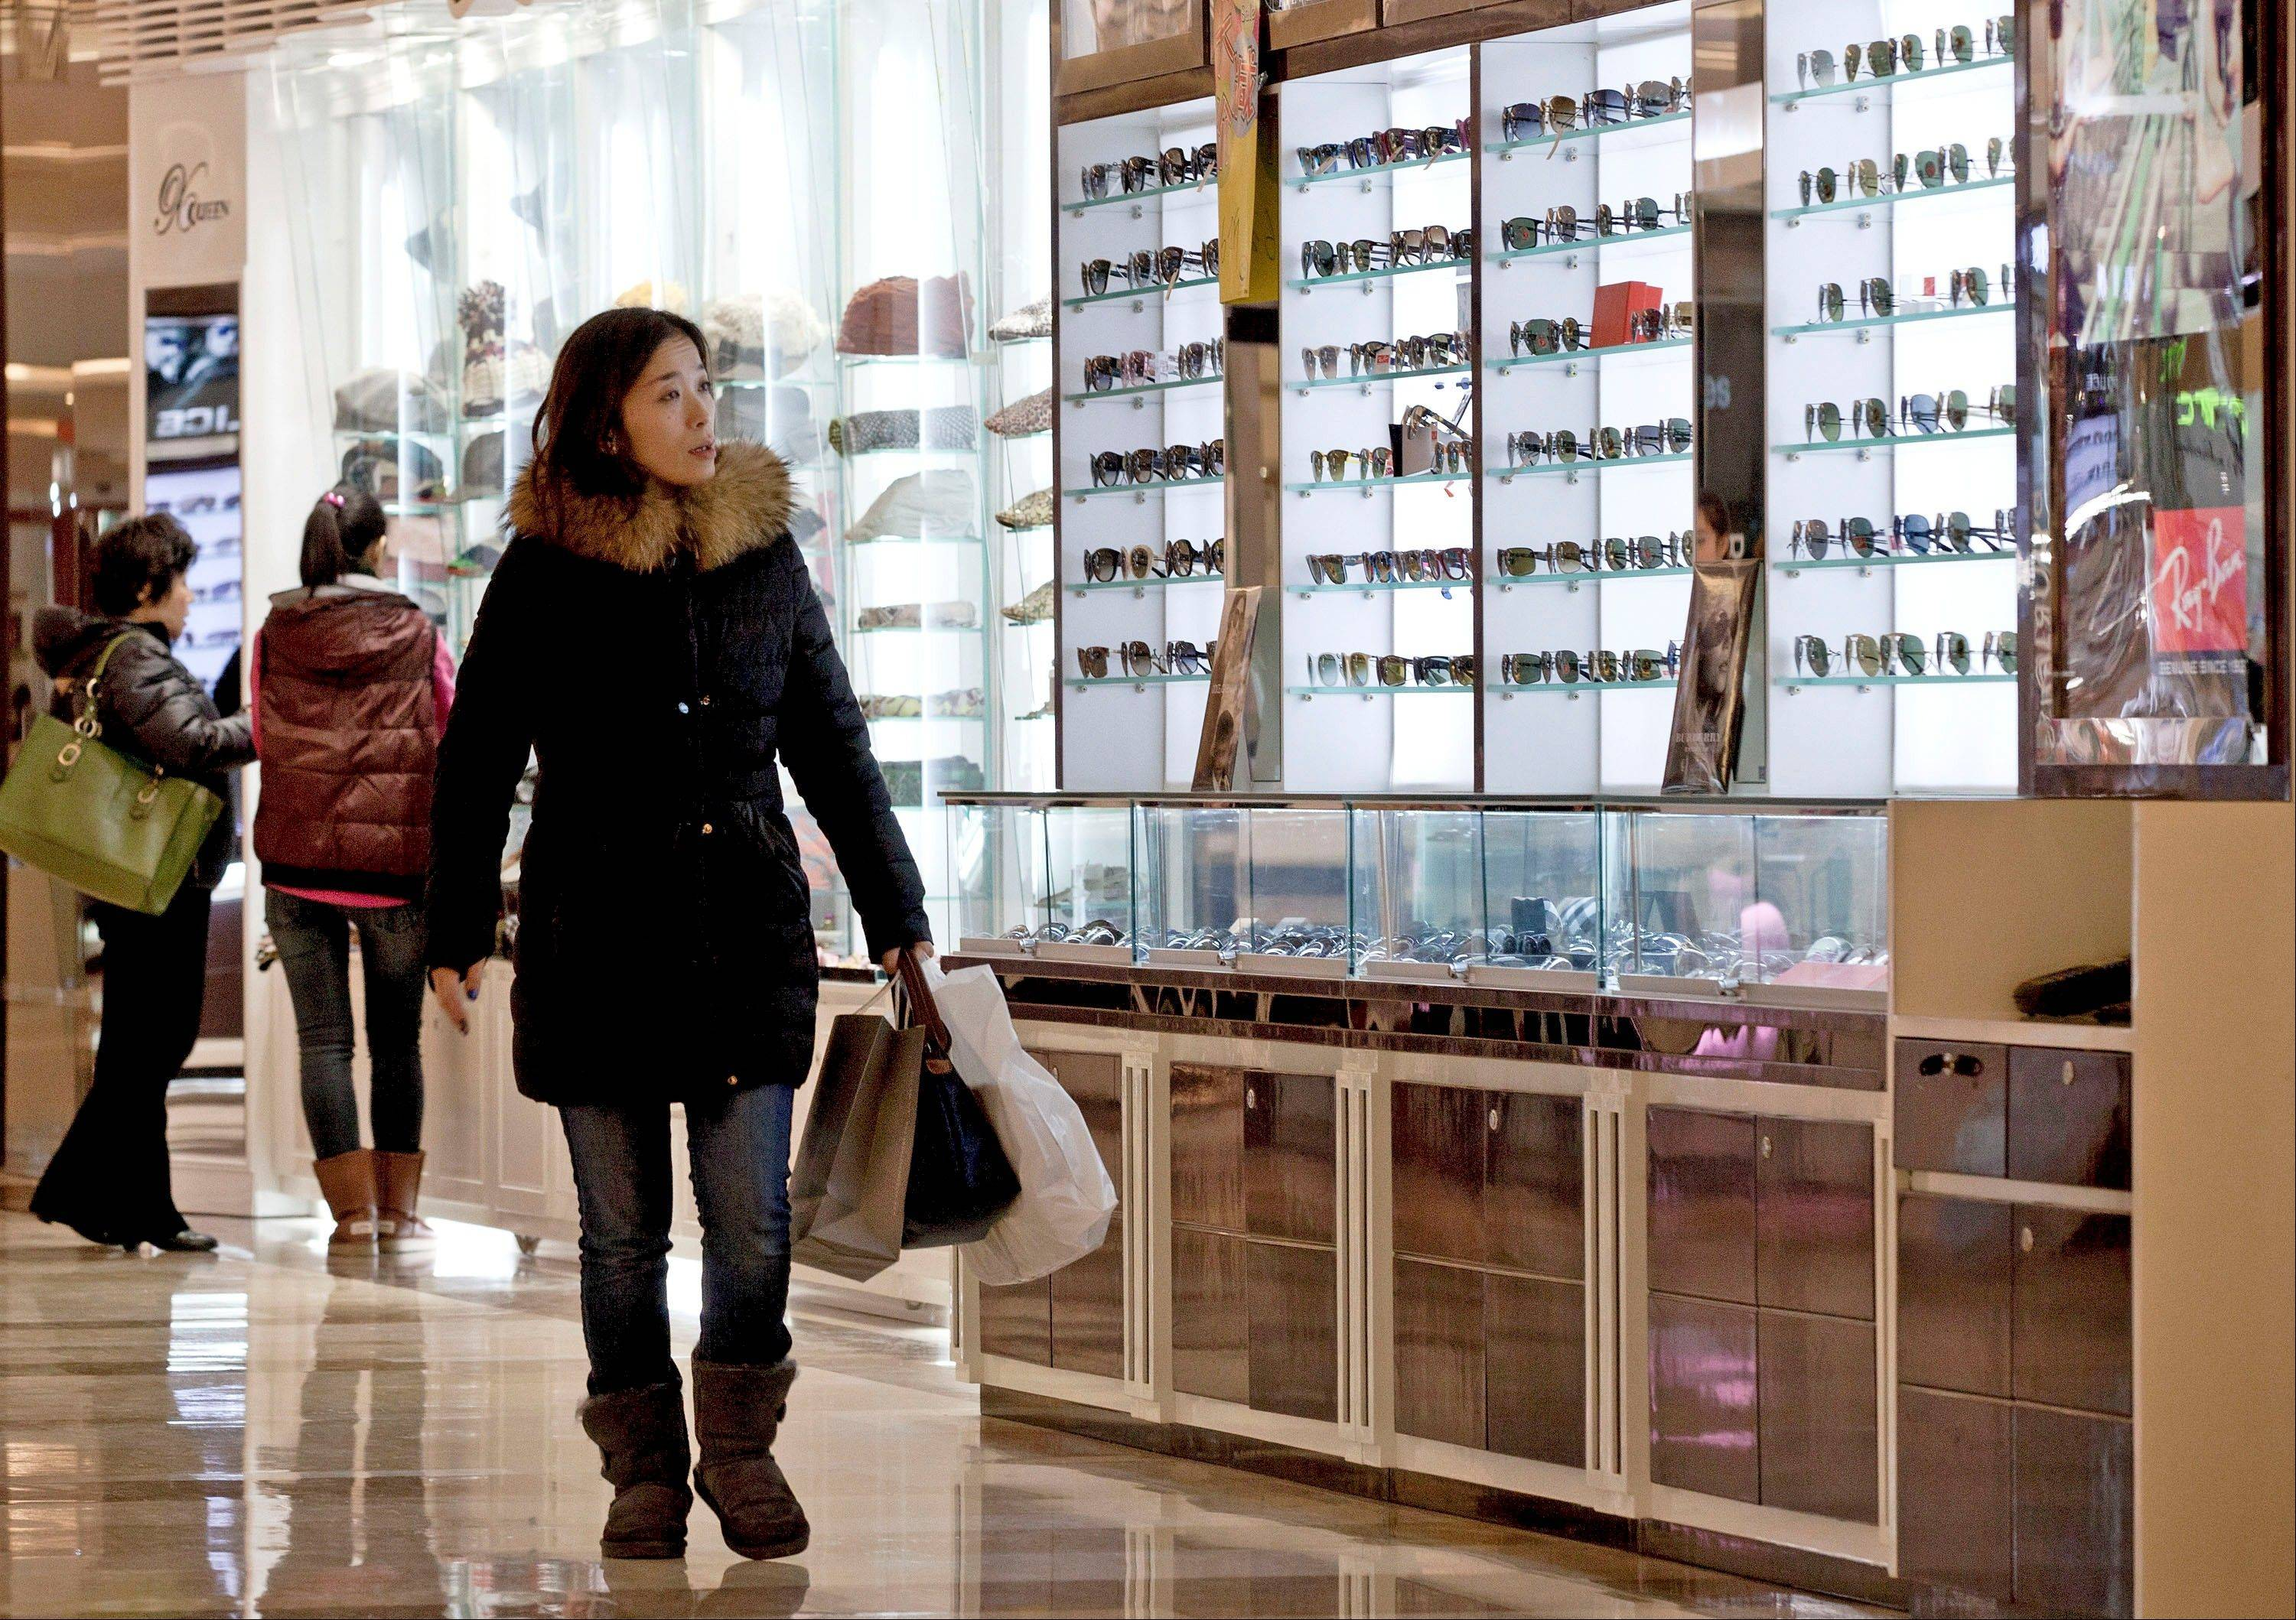 Chinese women look at the display at a shopping mall in Beijing Monday, Dec. 17, 2012. China�s new Communist Party leaders are promising reforms aimed at reducing reliance on exports to drive growth and more spending if needed to prop up a shaky economic recovery.